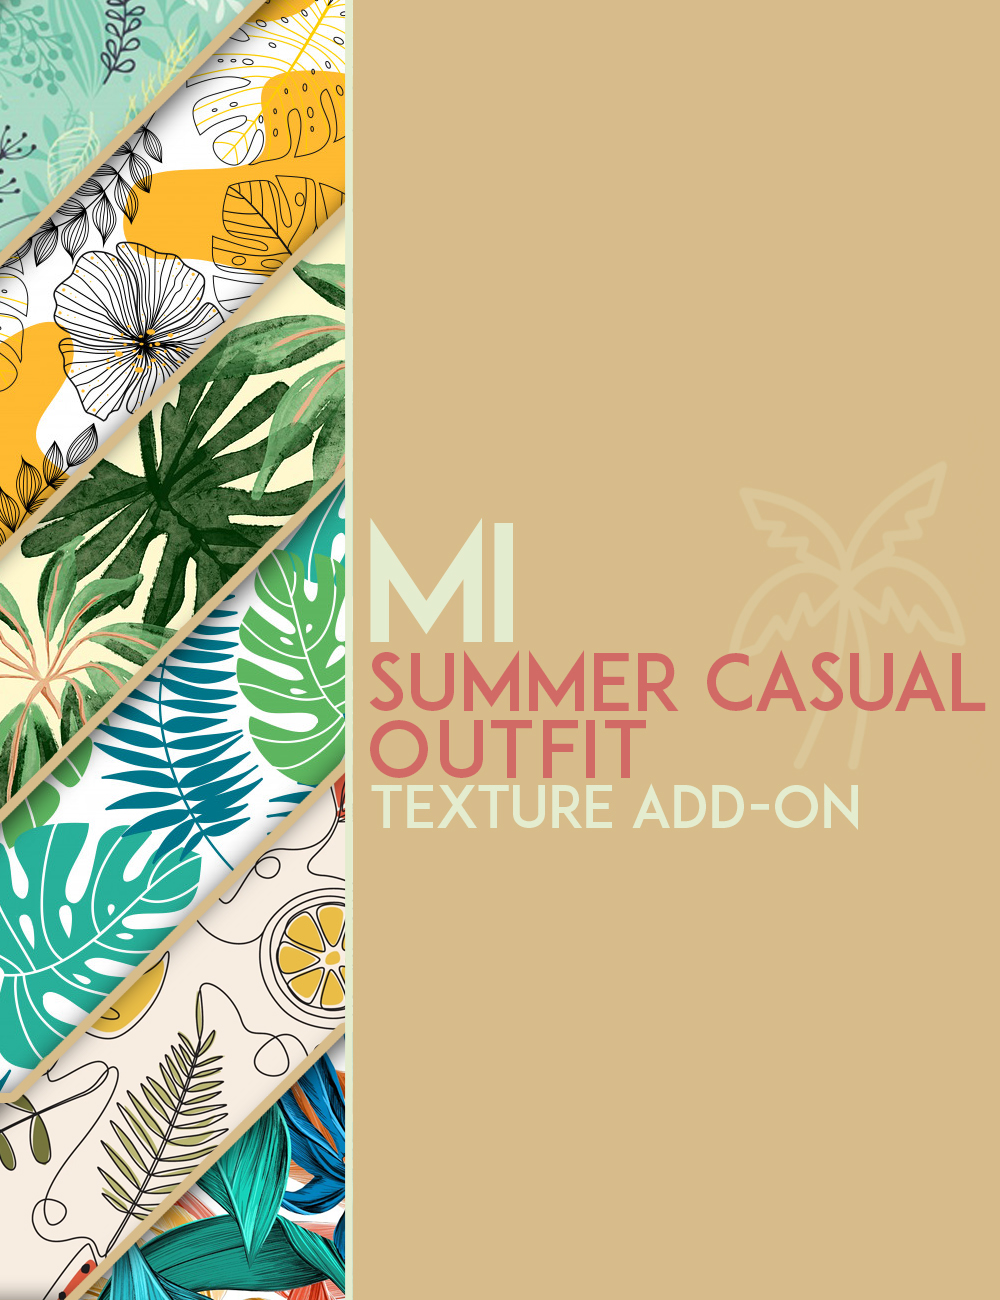 dForce MI Summer Casual Outfit Texture Add-on by: mal3Imagery, 3D Models by Daz 3D